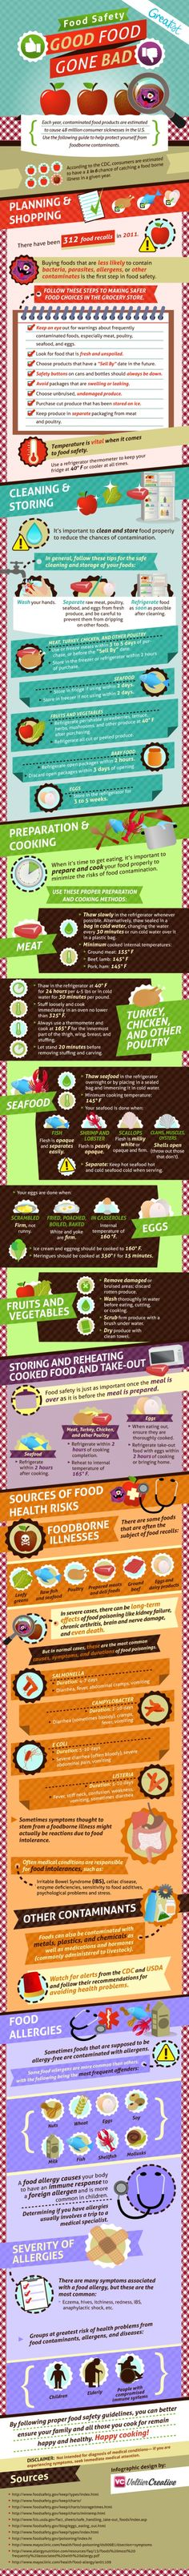 A neat information list on food safety.